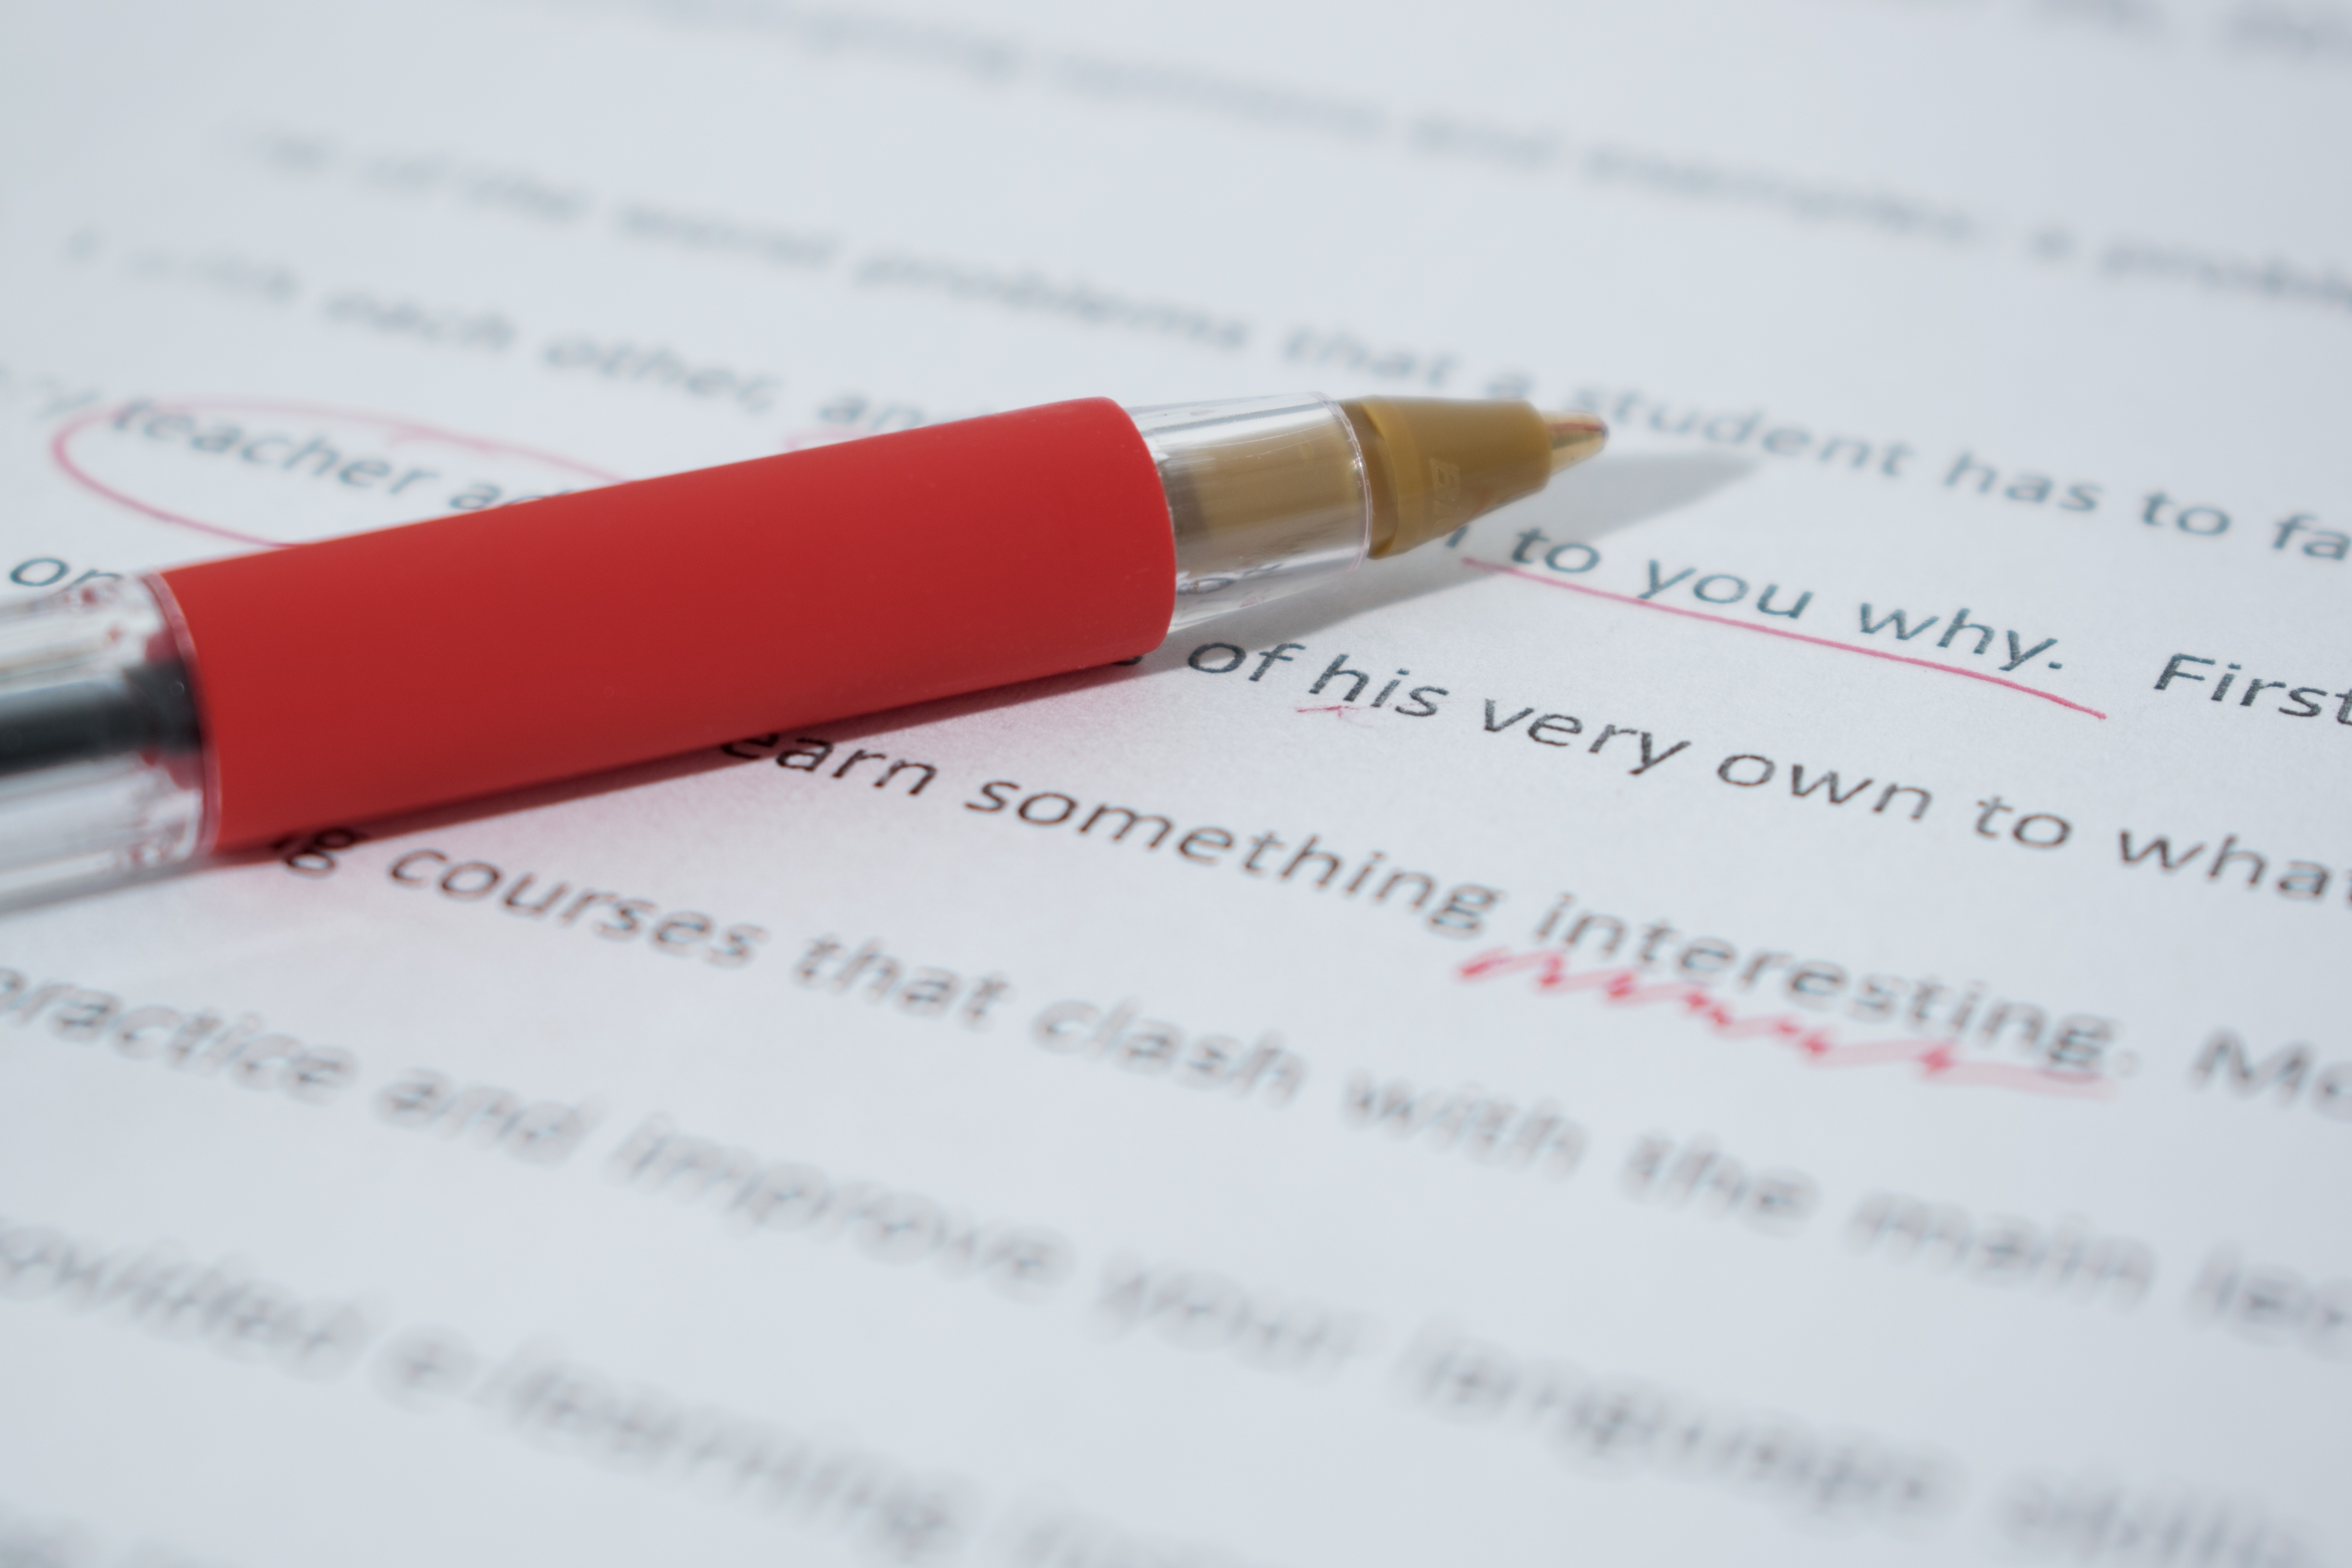 A red pen rests on top of a manuscript.